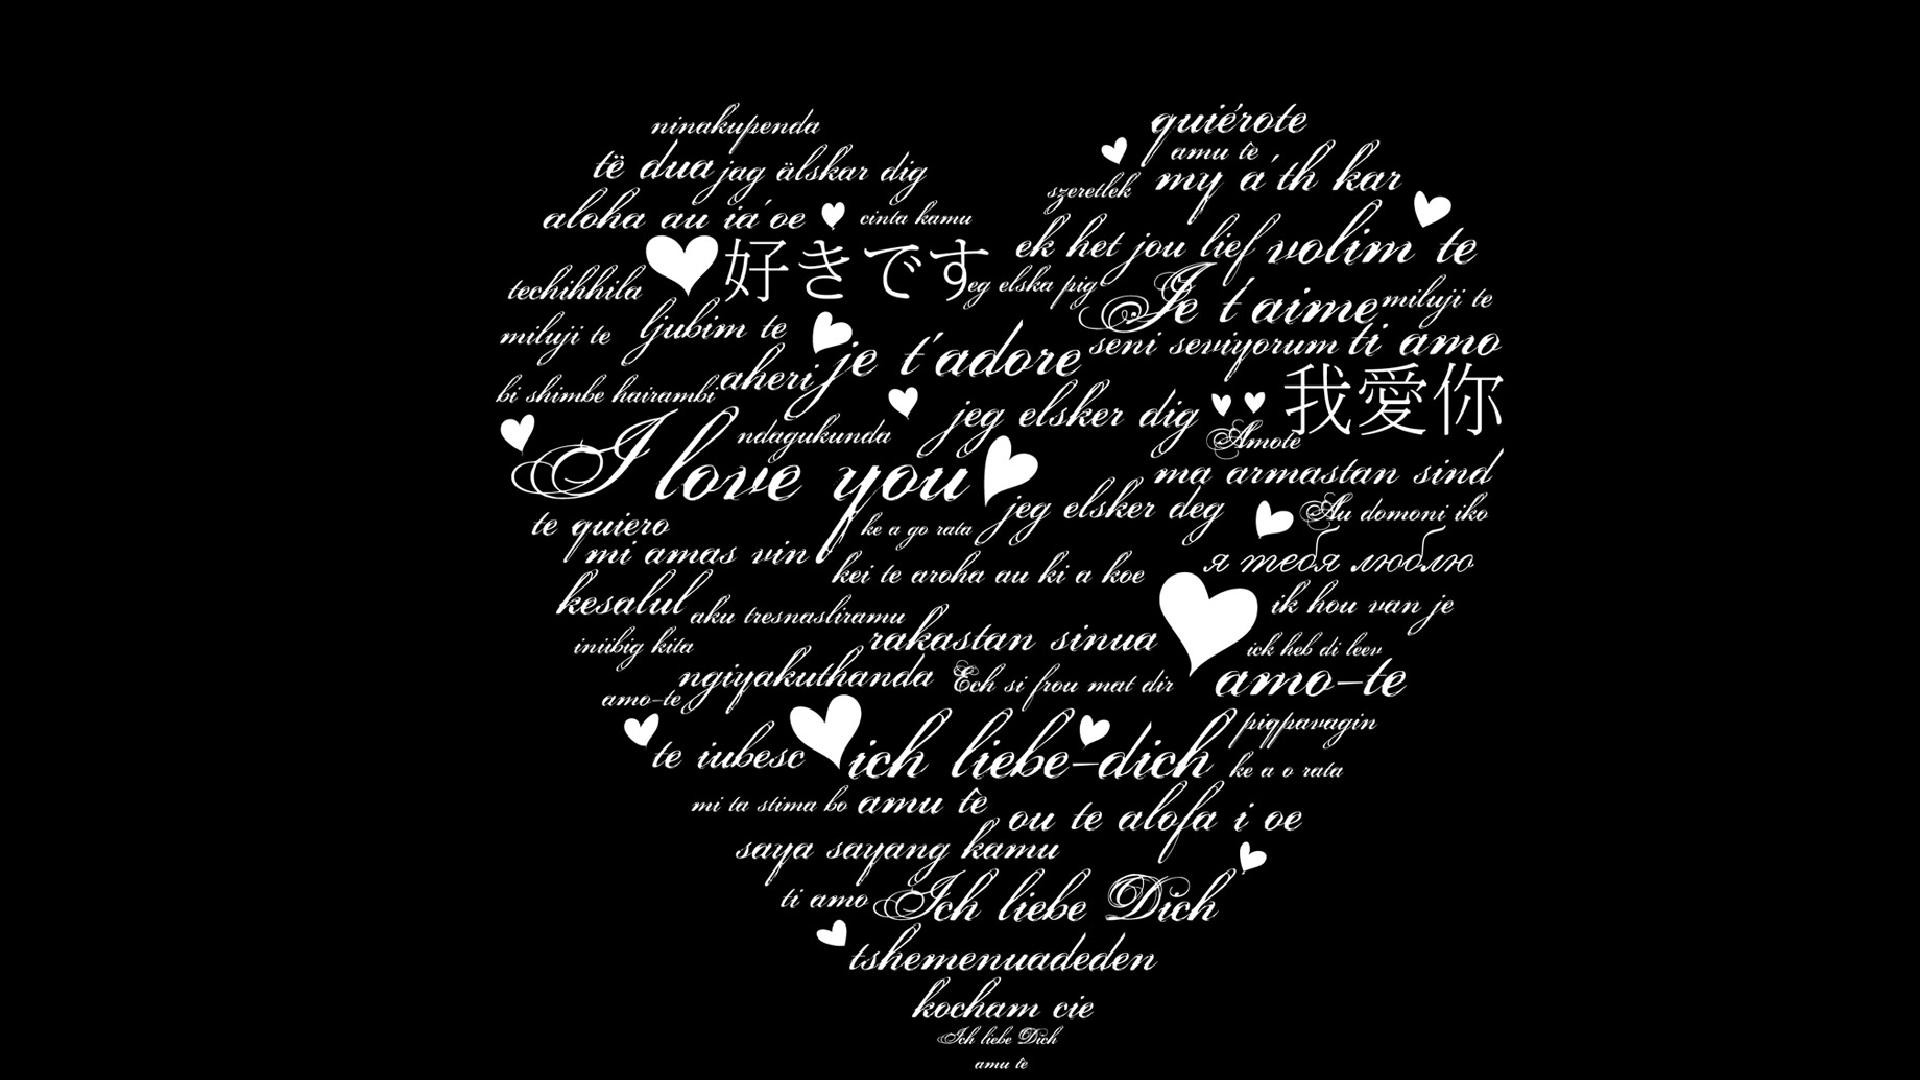 Love Words Wallpaper Desktop www.pixshark.com - Images Galleries With A Bite!